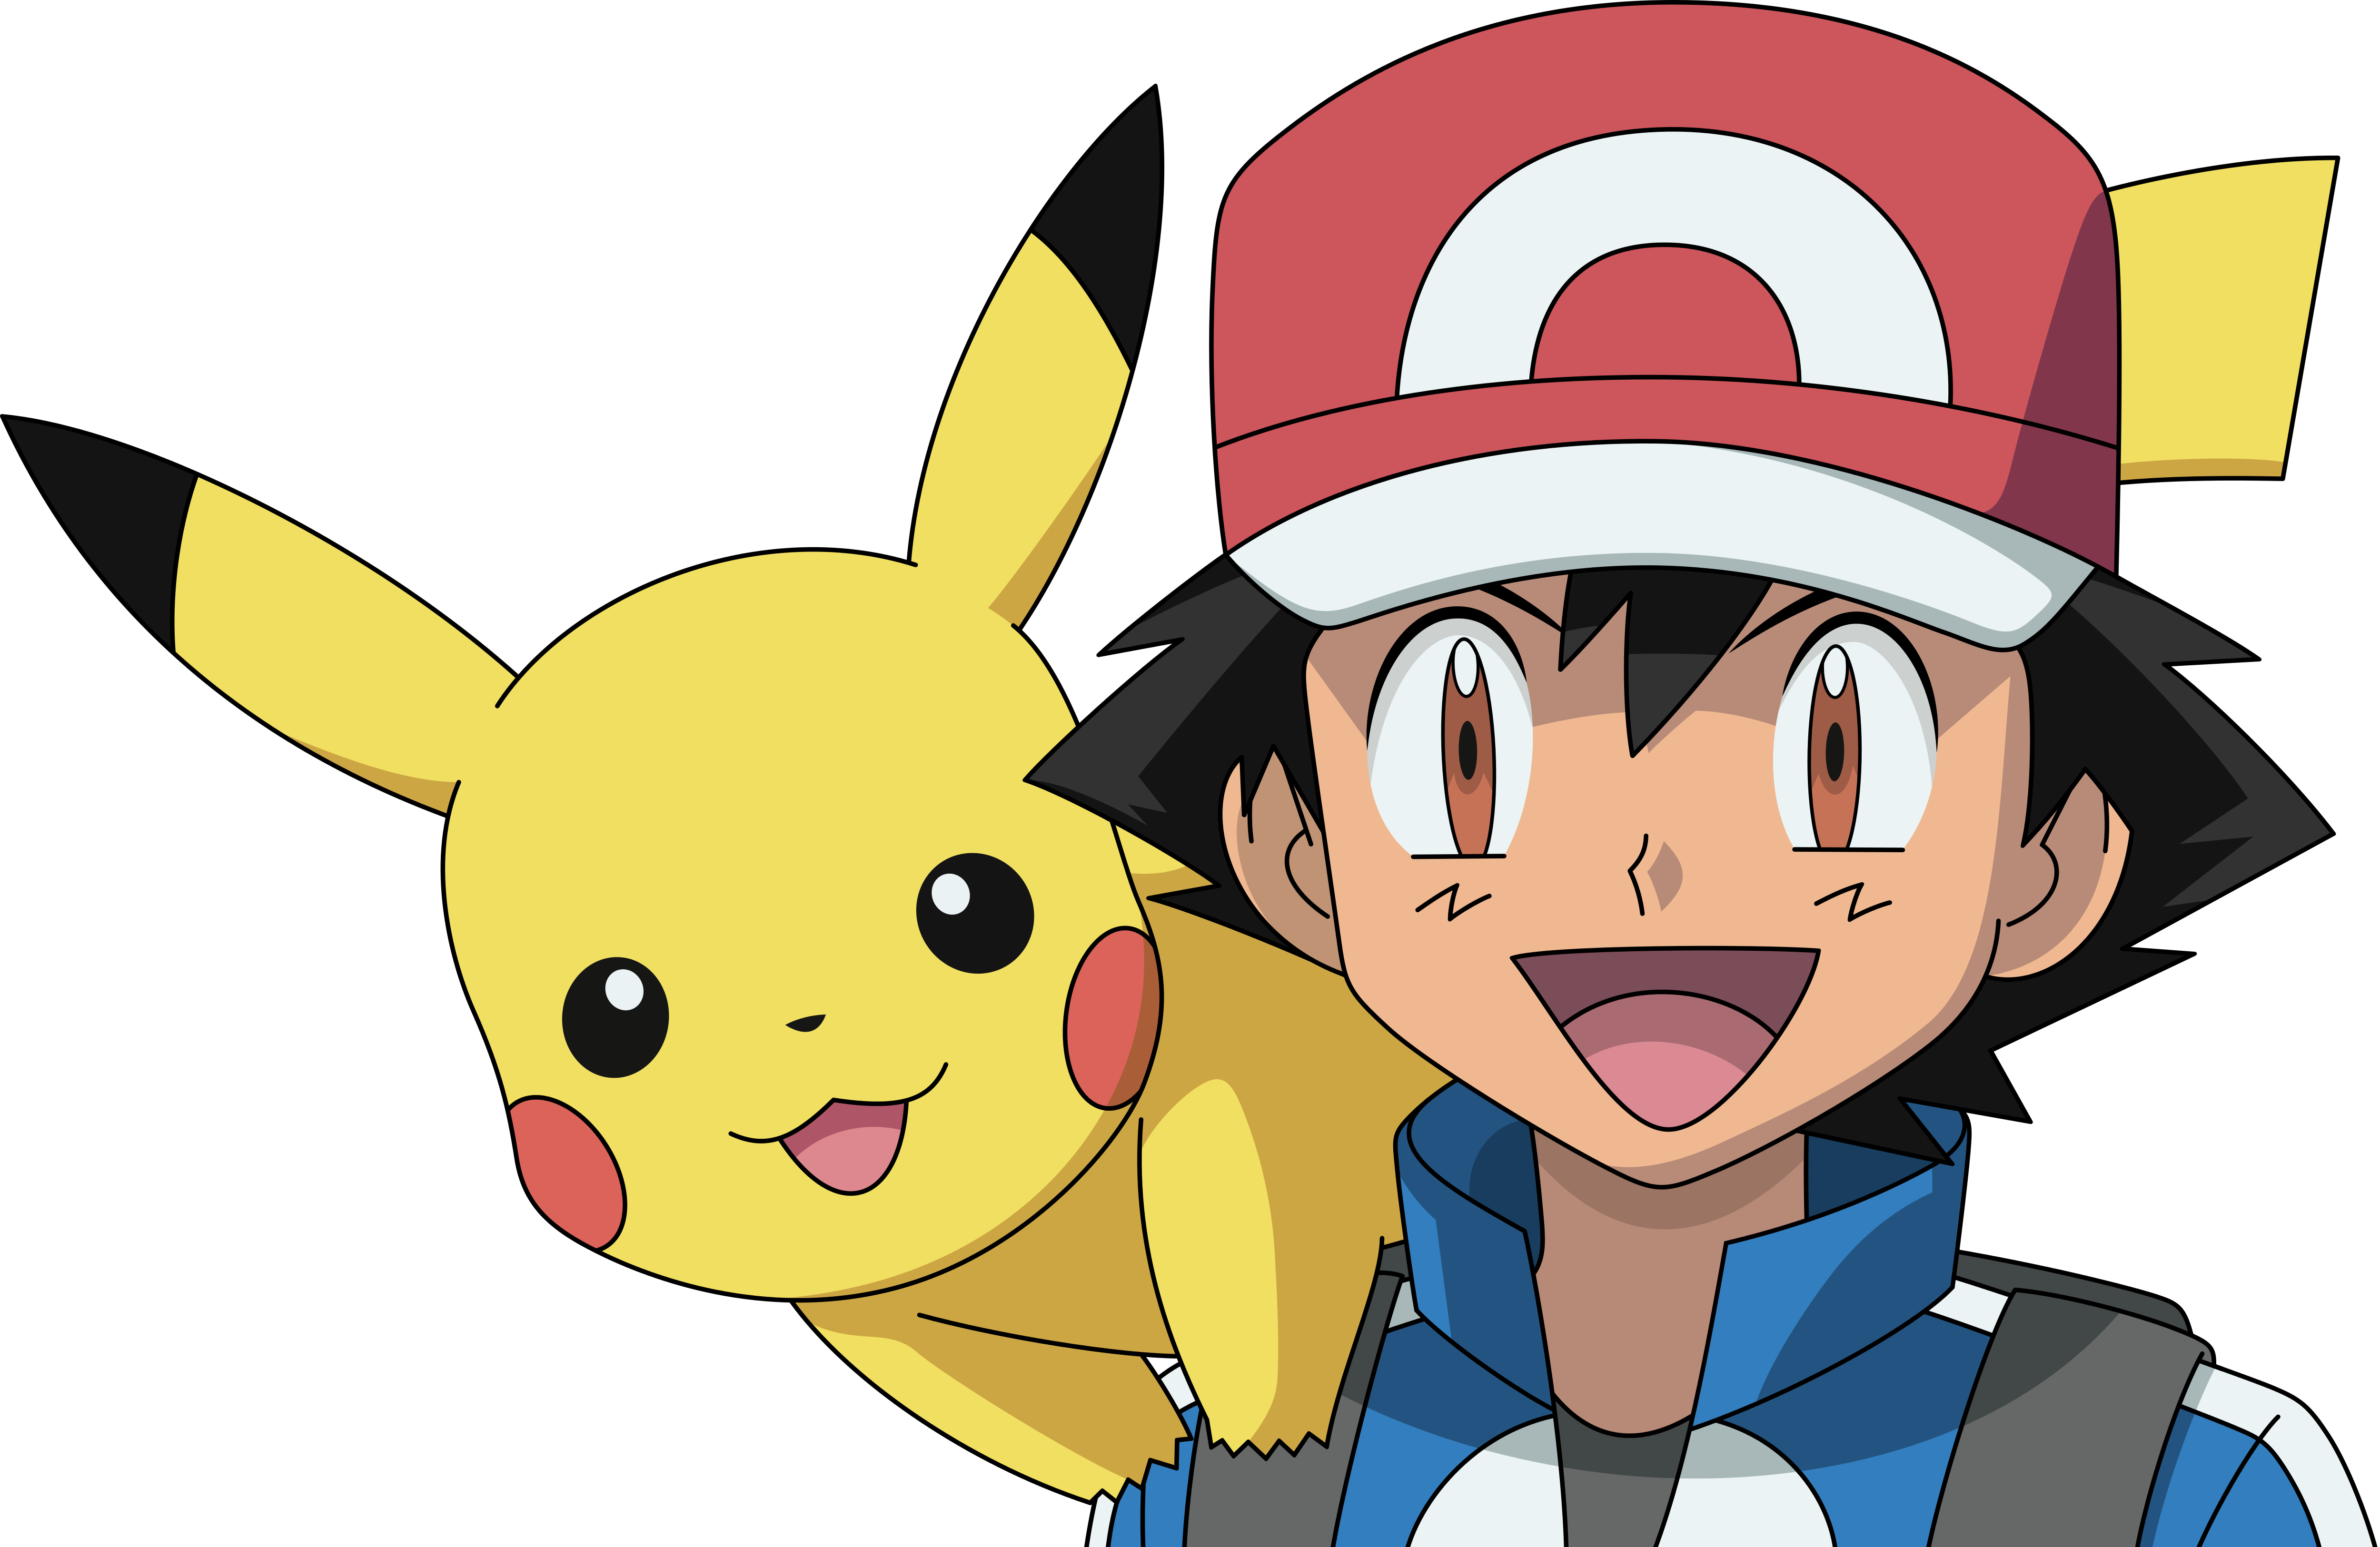 how to draw ash ketchum and pikachu